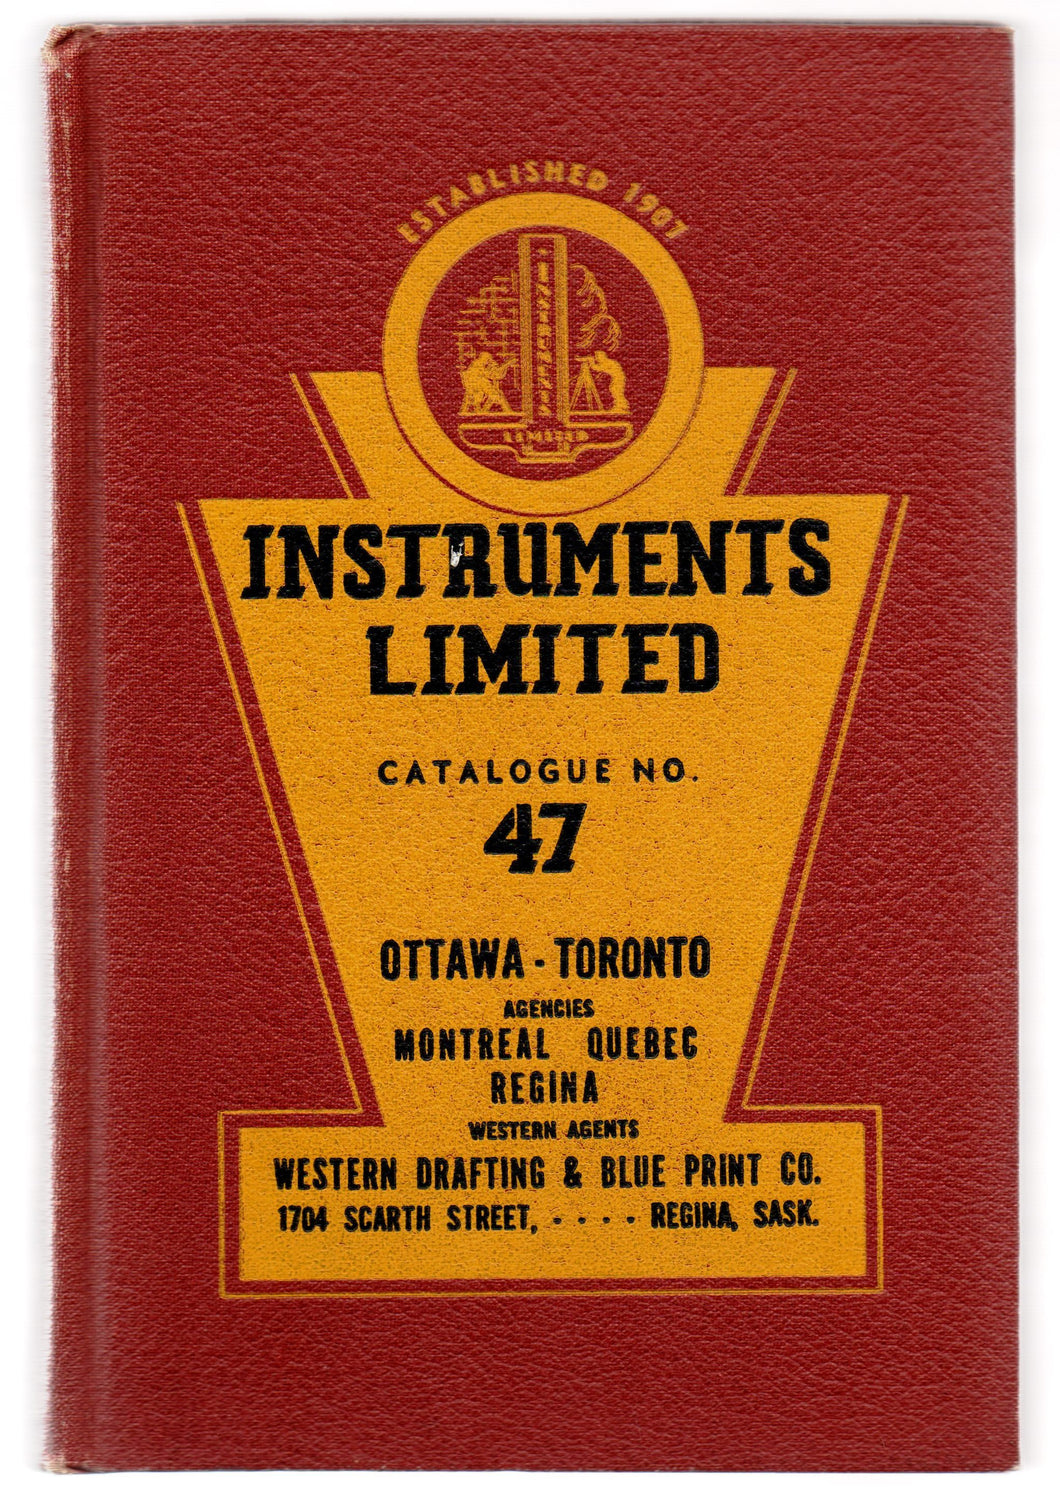 Instruments Limited Catalogue No. 47: Surveyors', Engineers', Architects' & Draughtsmens' Instruments & Supplies